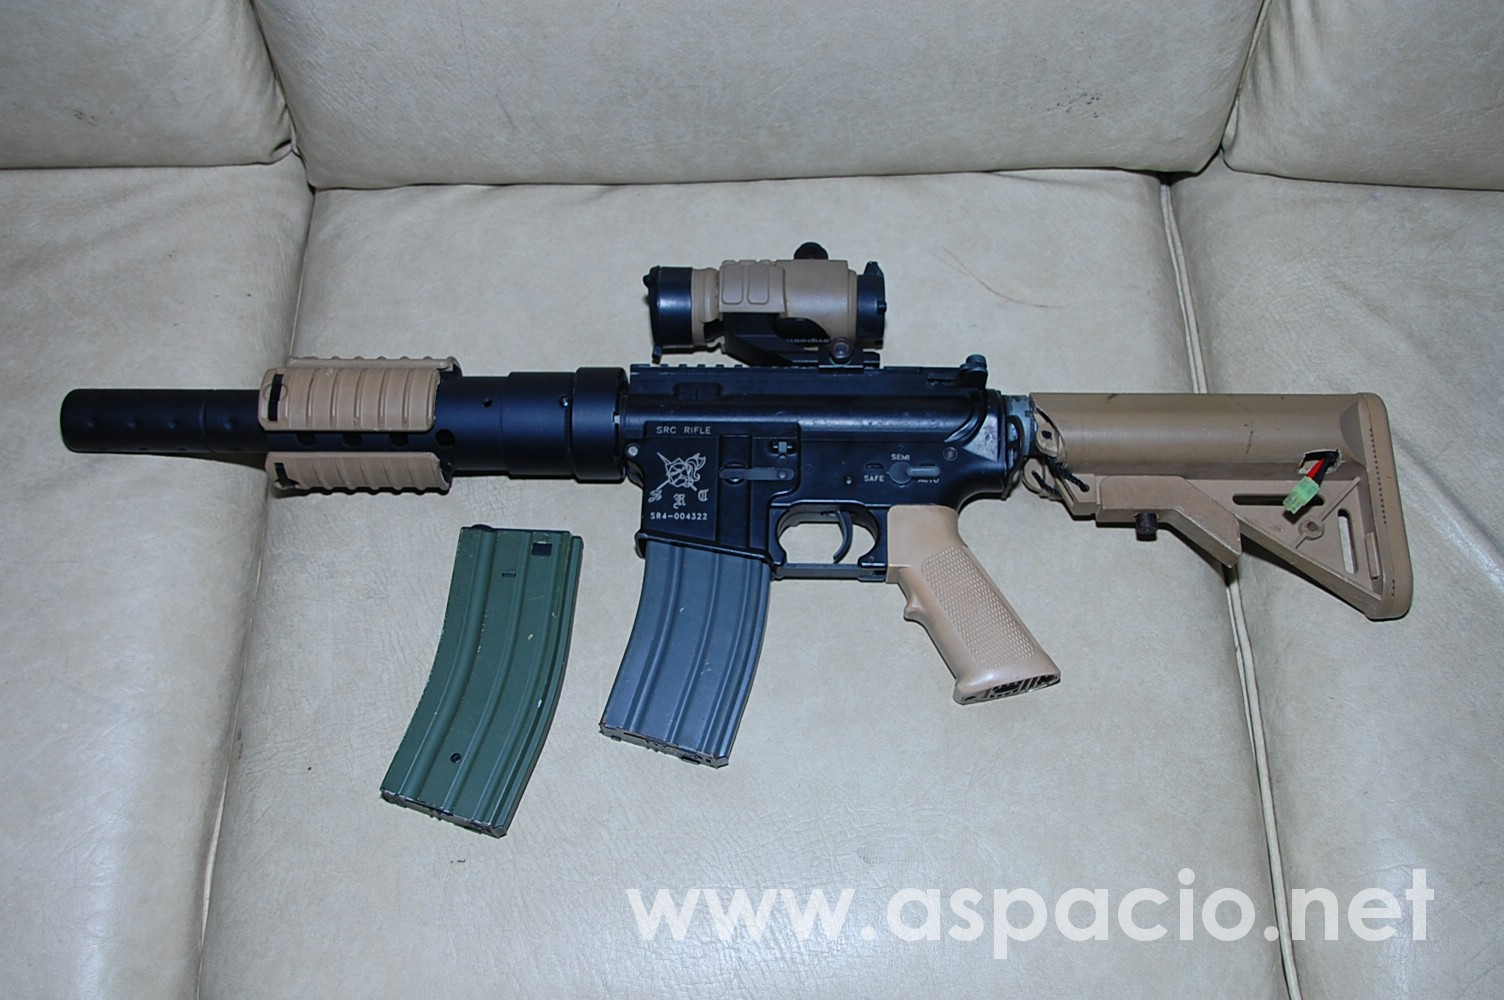 List Of Airsoft Shops And Stores In Metro Manila The New Juan Tmad Air Soft Gun My M4 Sr4 Series Rifle